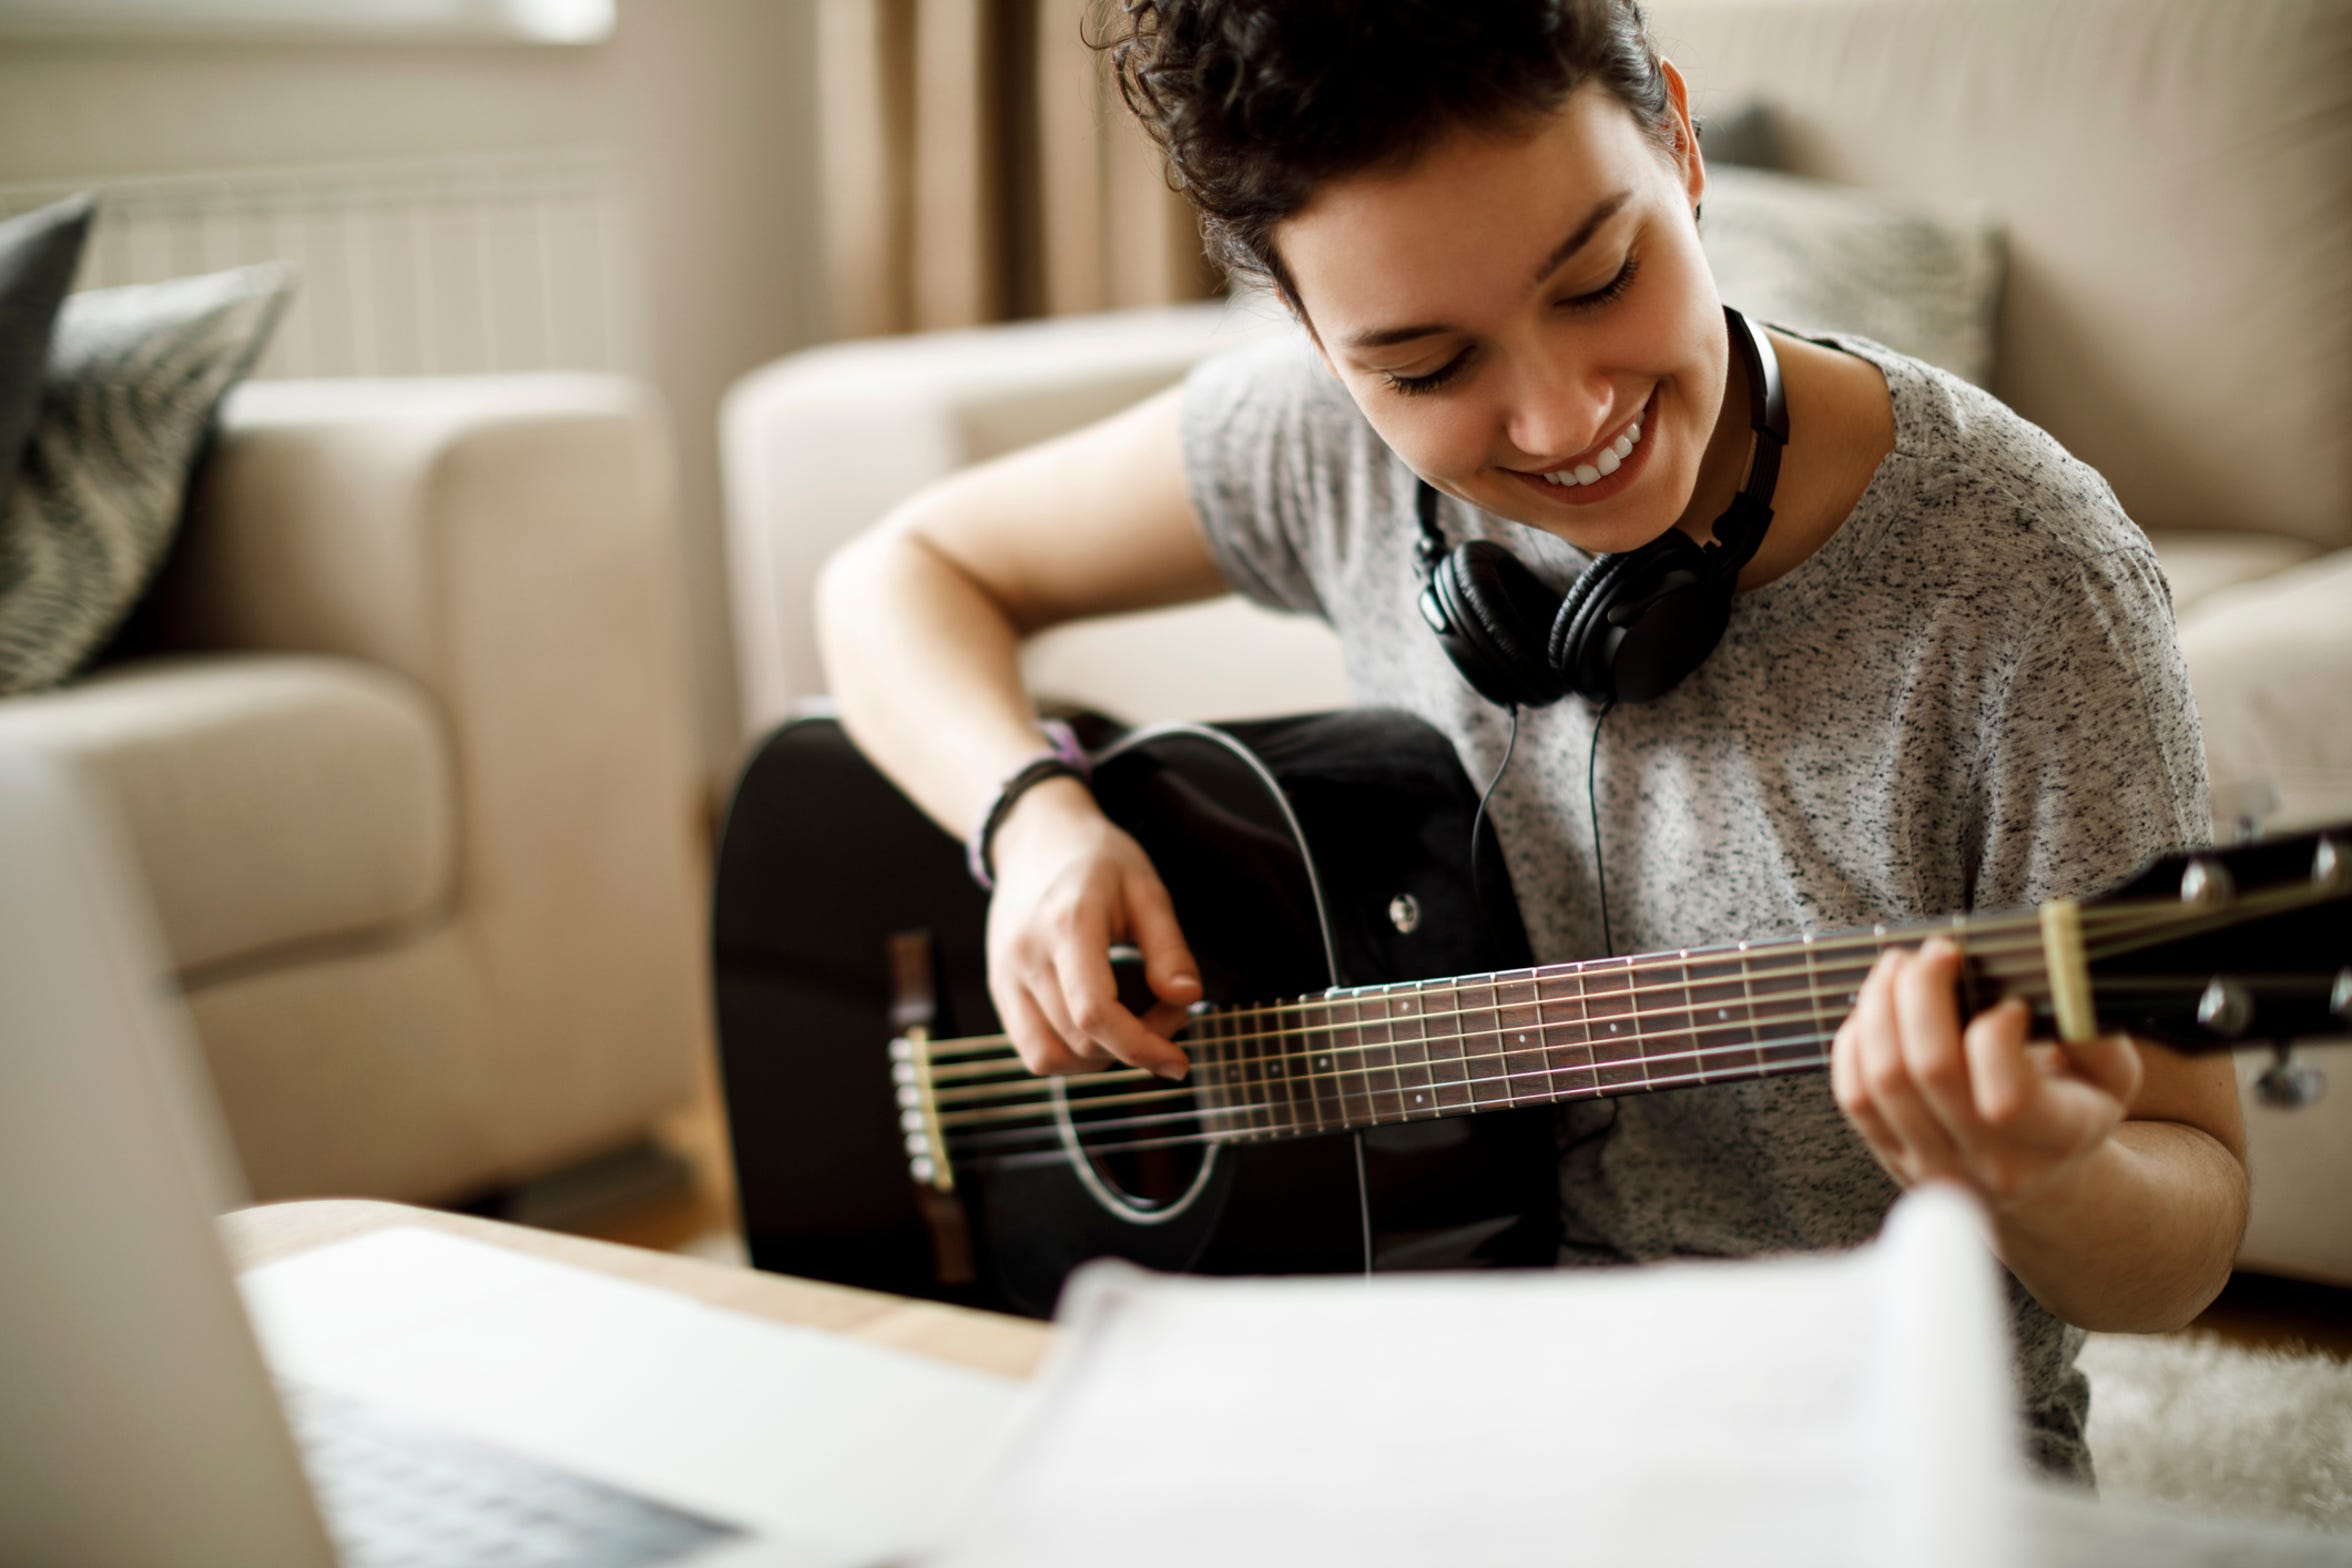 Self-care can be practiced in a number of ways, including starting a new hobby or learning a musical instrument.